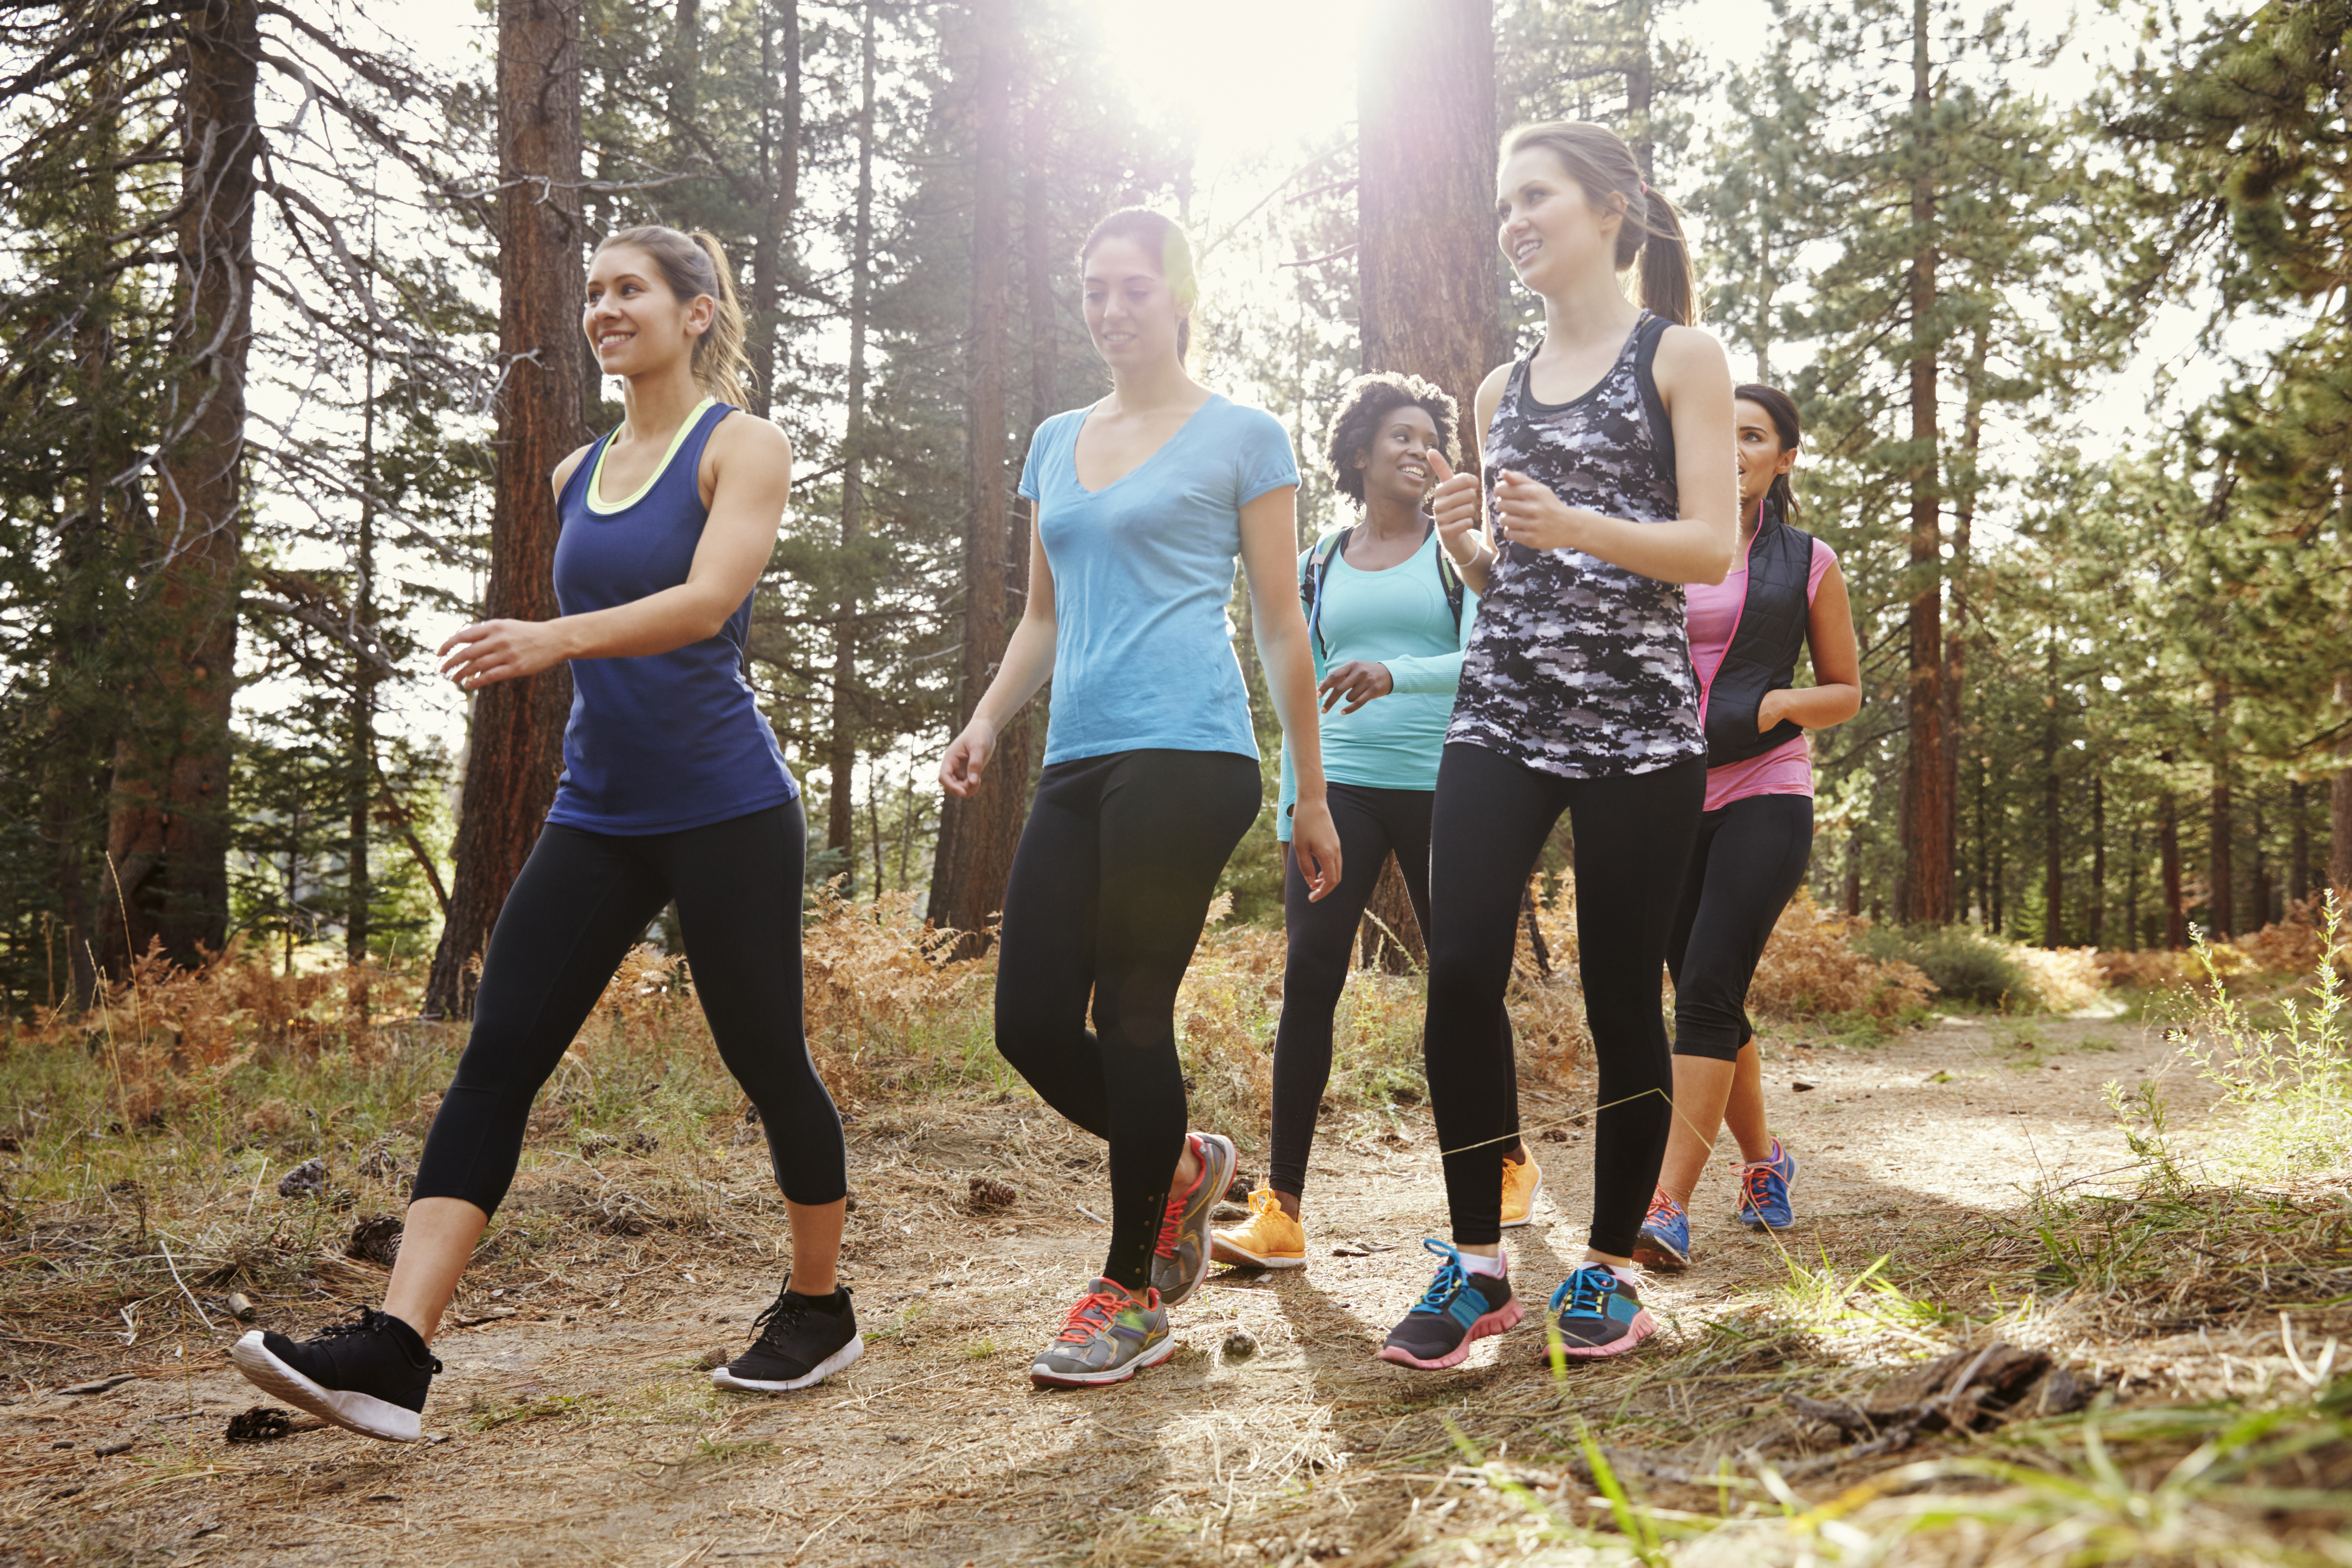 Use Twist 25 DHEA Cream To Lose Weight With Diet And Exercise